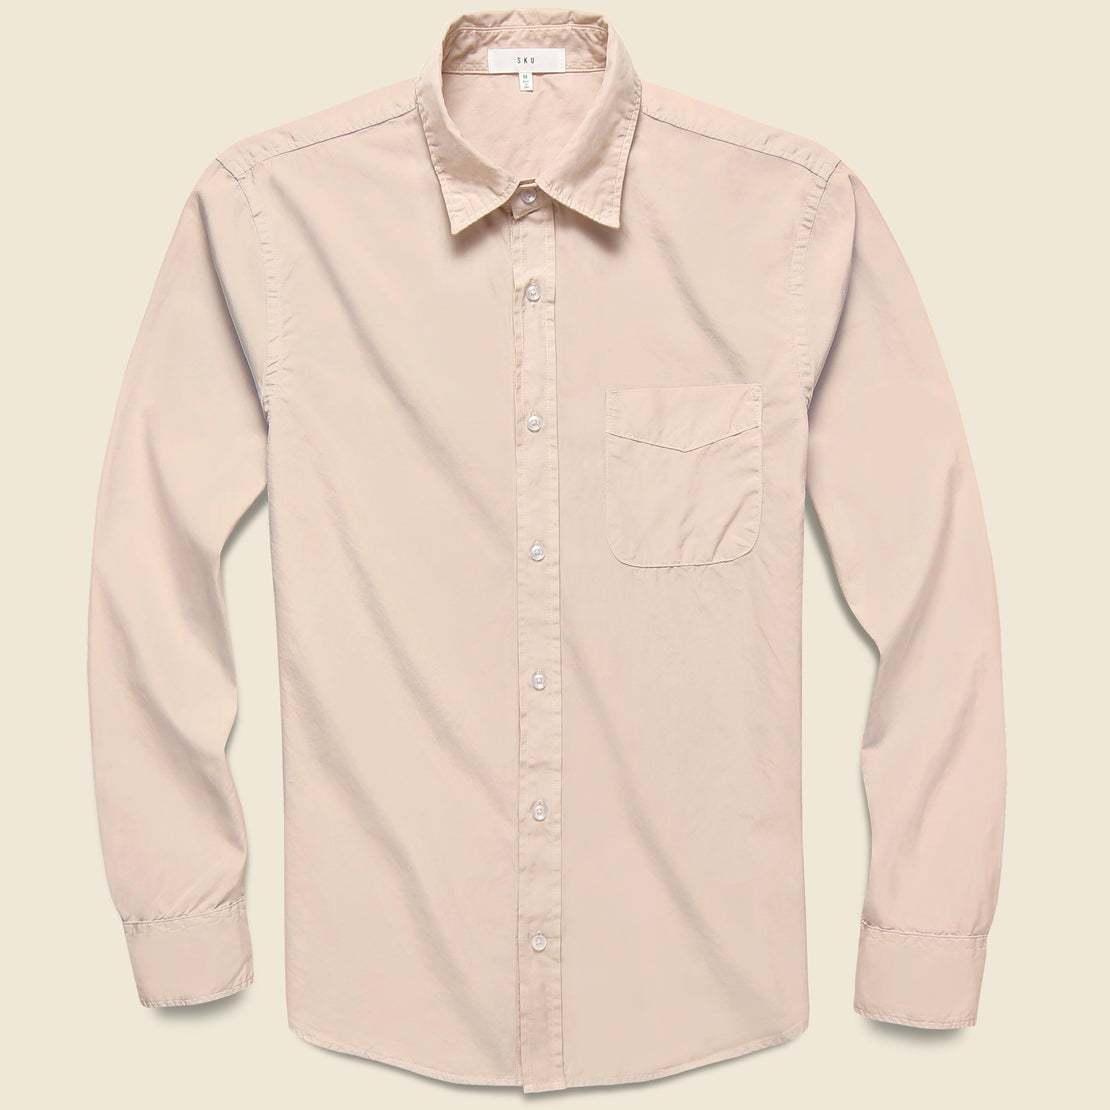 Save Khaki Poplin Standard Shirt - Tea